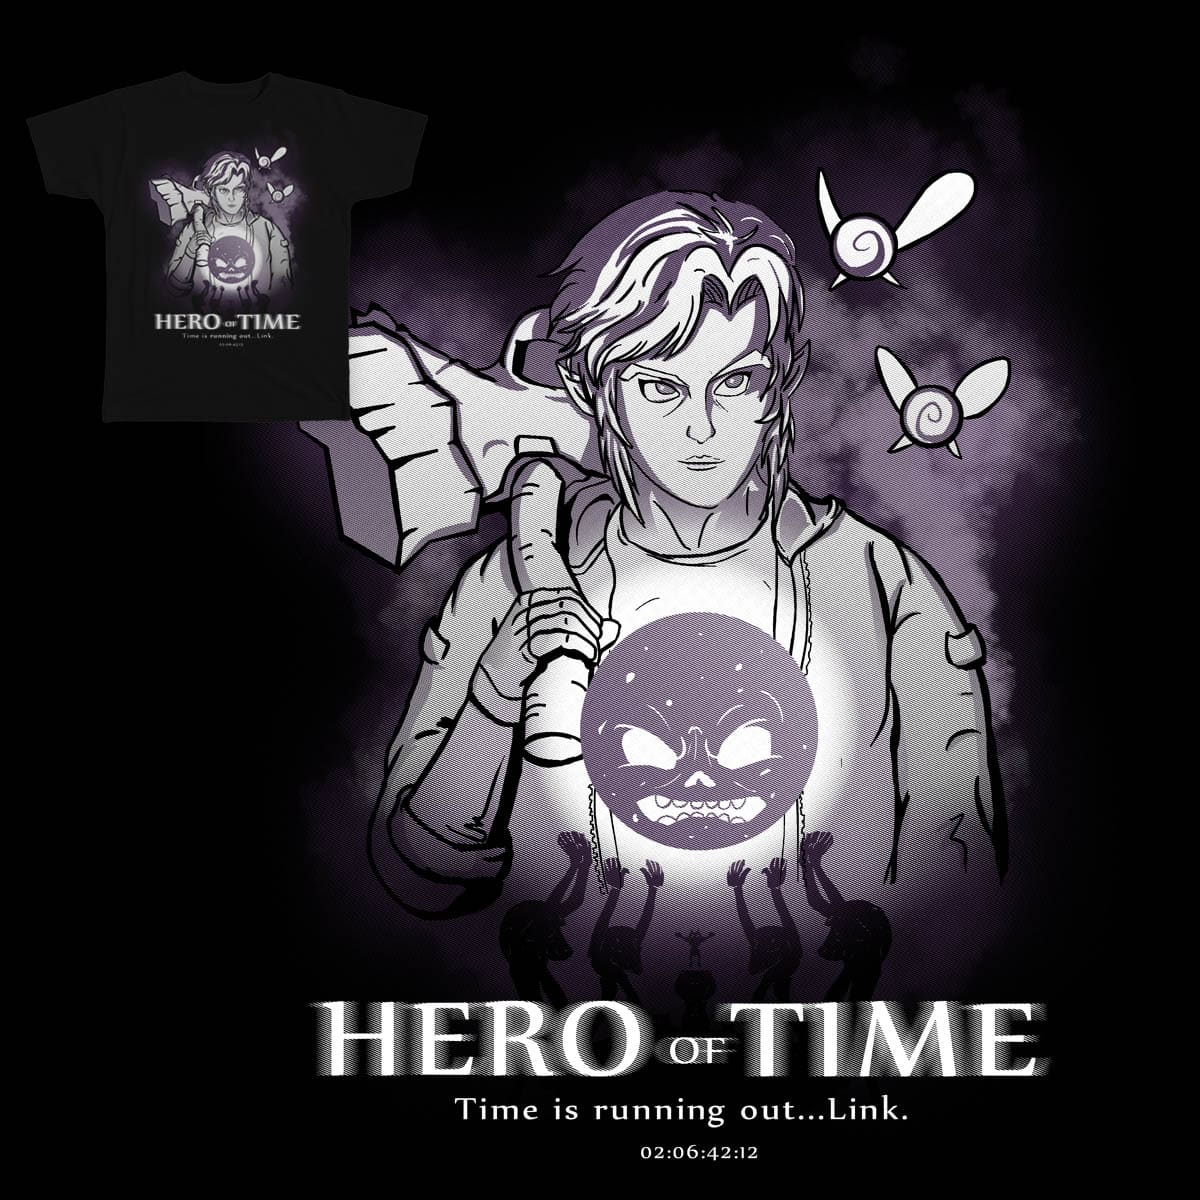 Hero of Time by carlos.gil.18 on Threadless